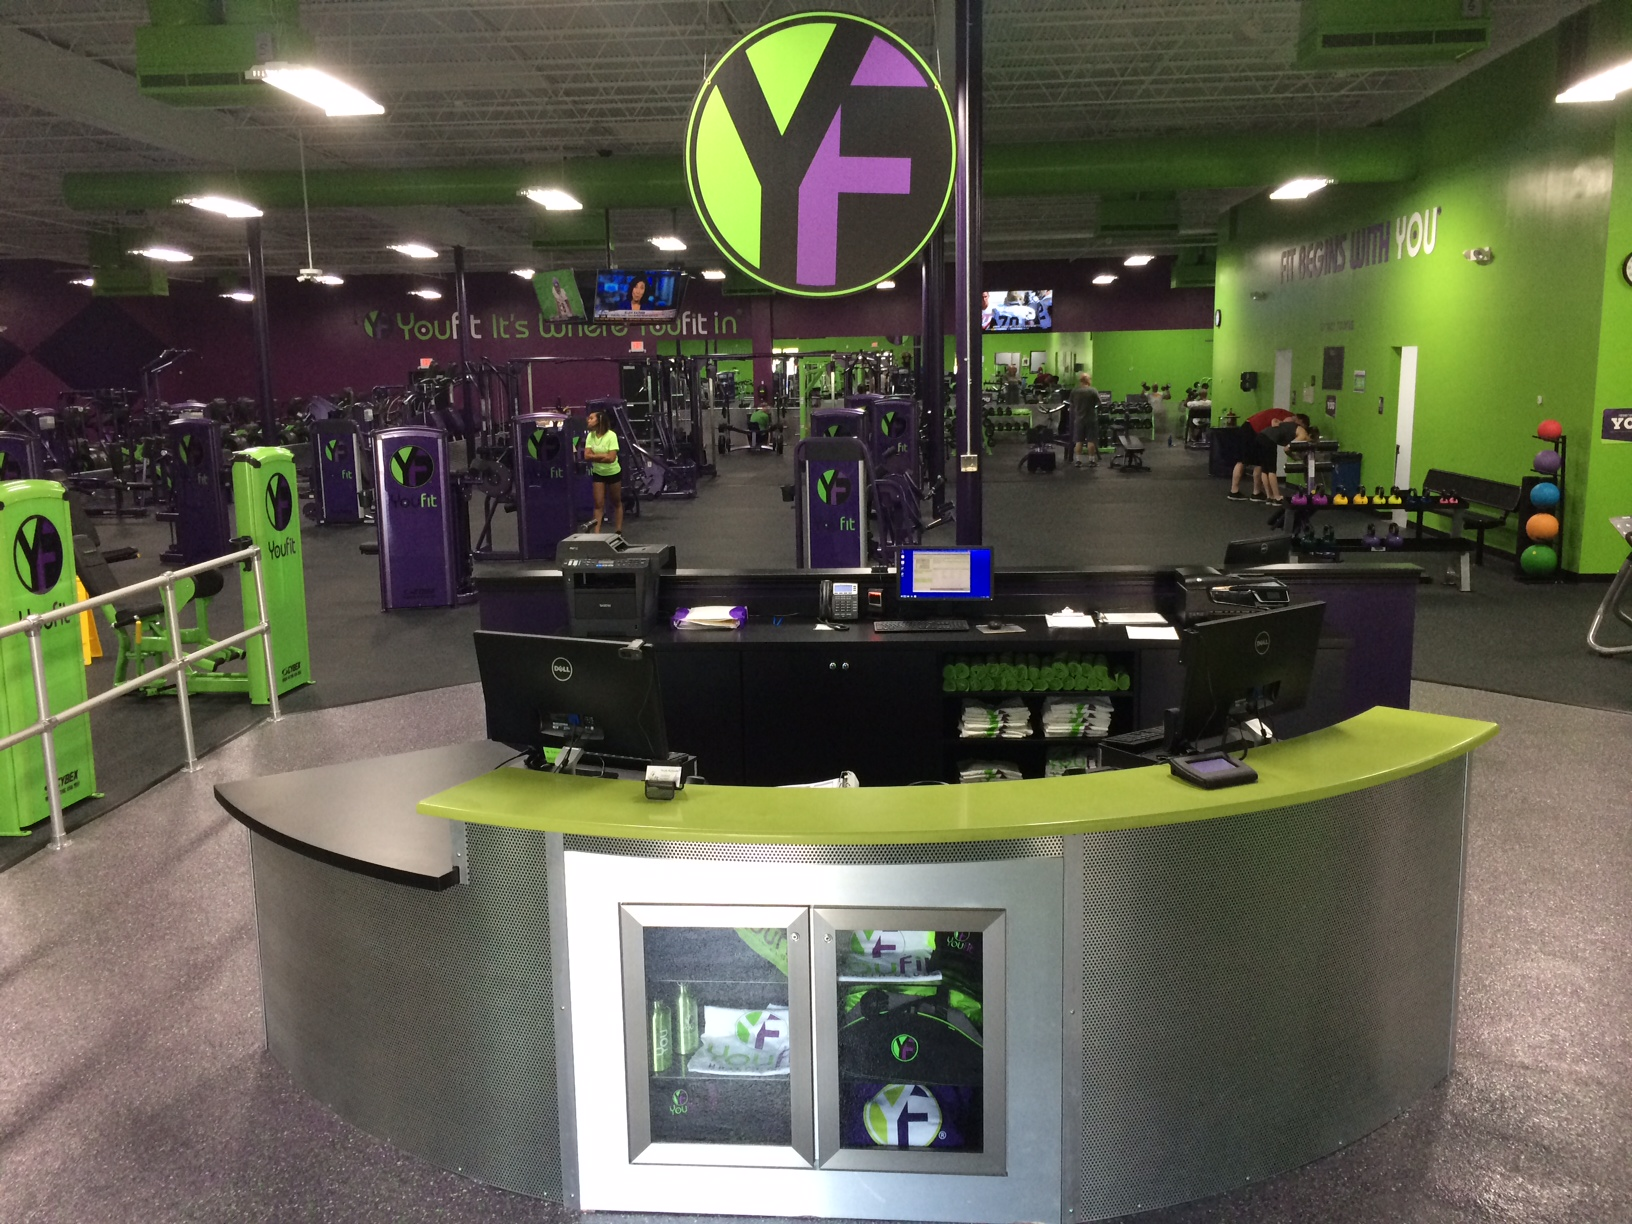 Youfit Health Clubs image 1